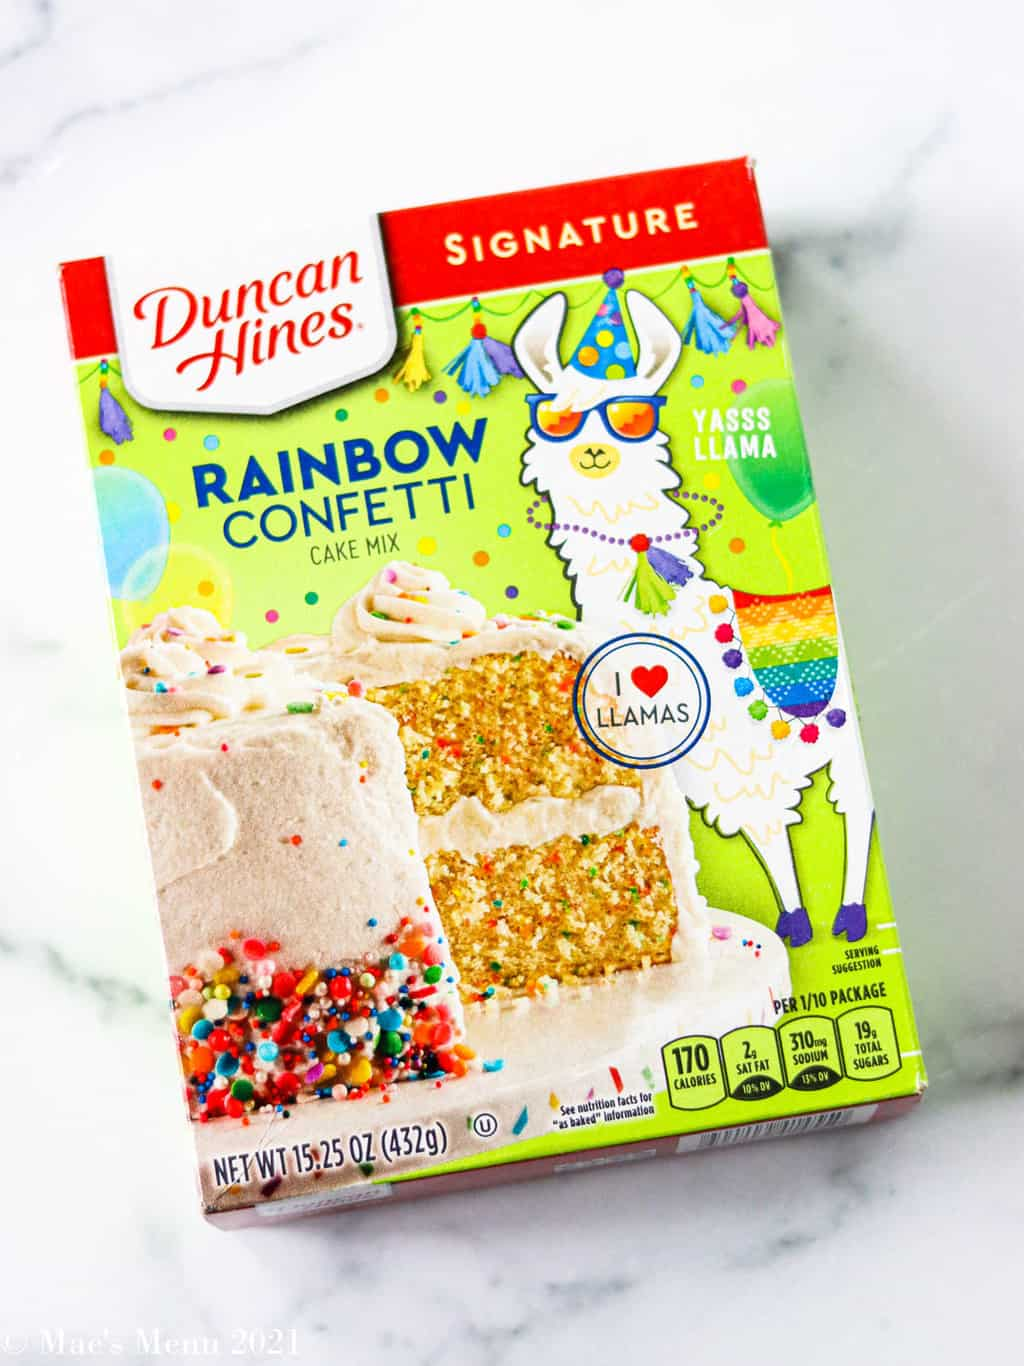 A box of Duncan Hines Rainbow confetti cake mix with a llama on the front of it